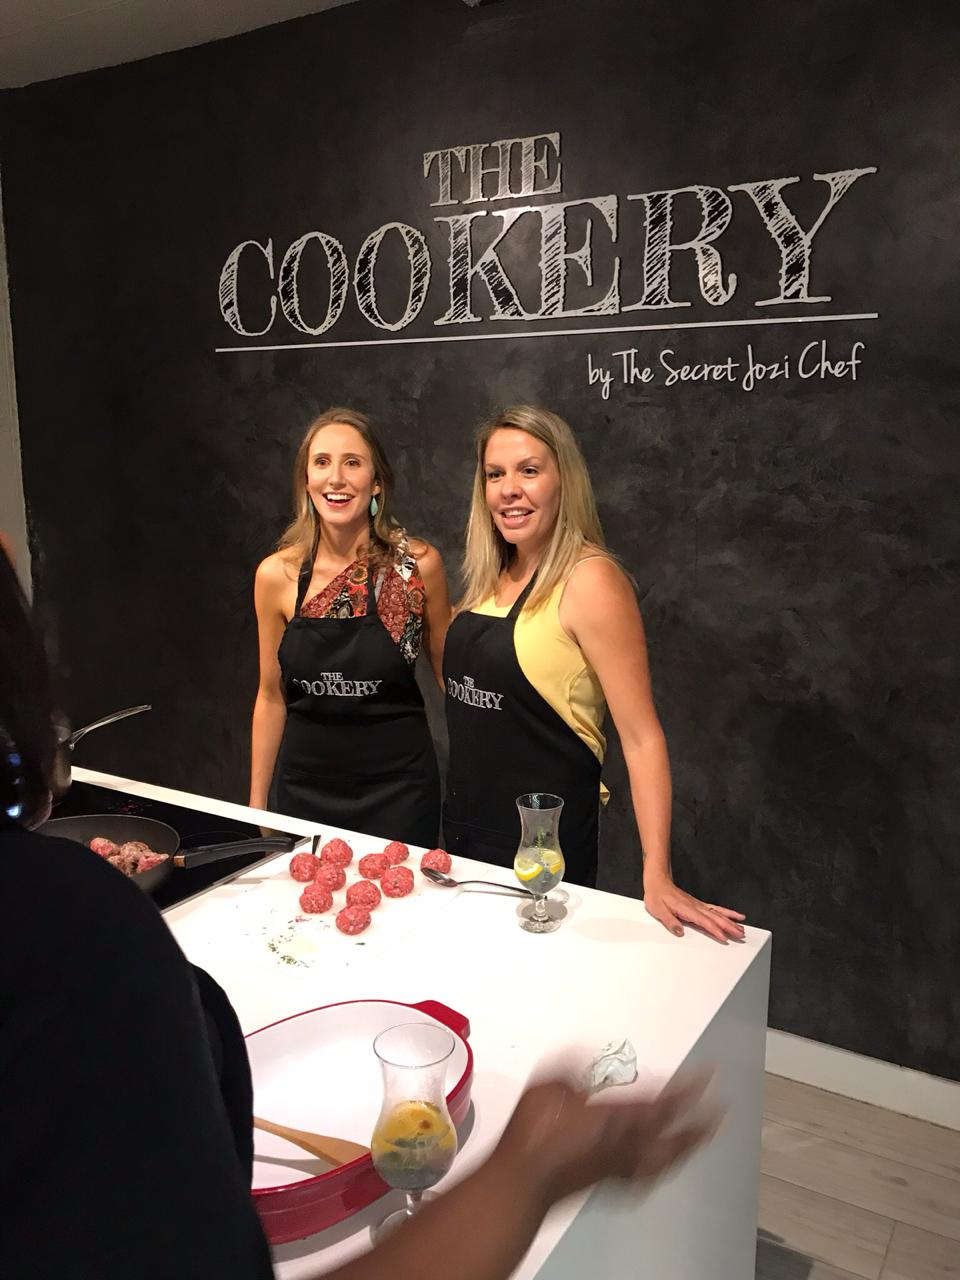 Cookery at The Colony